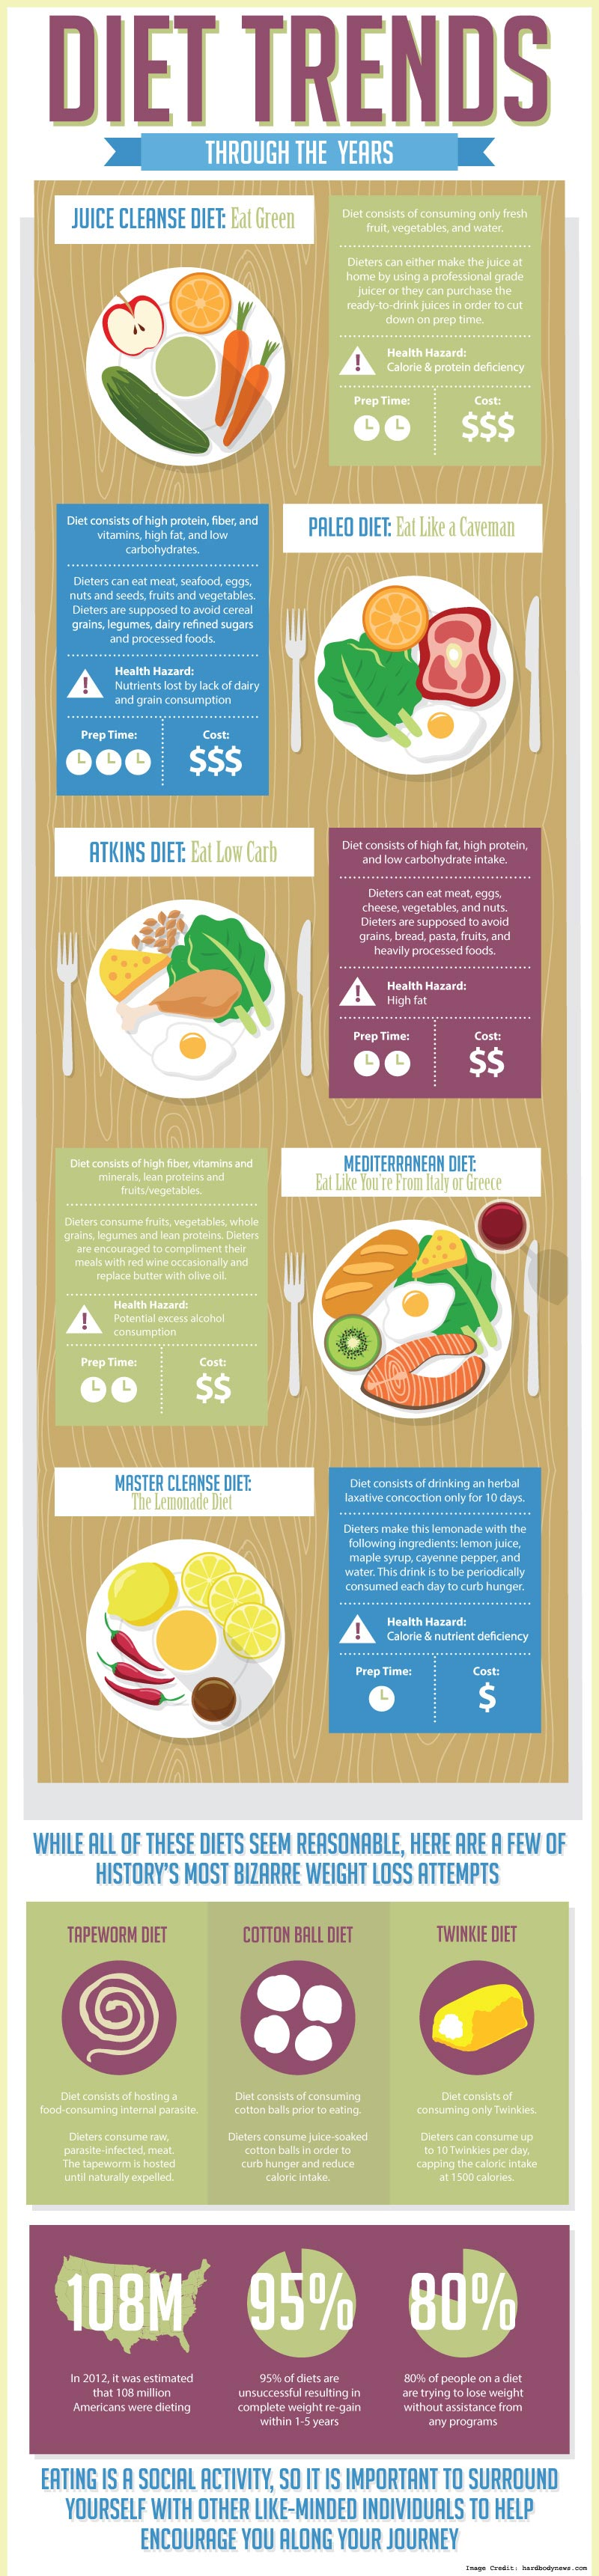 Dieting Trends Info